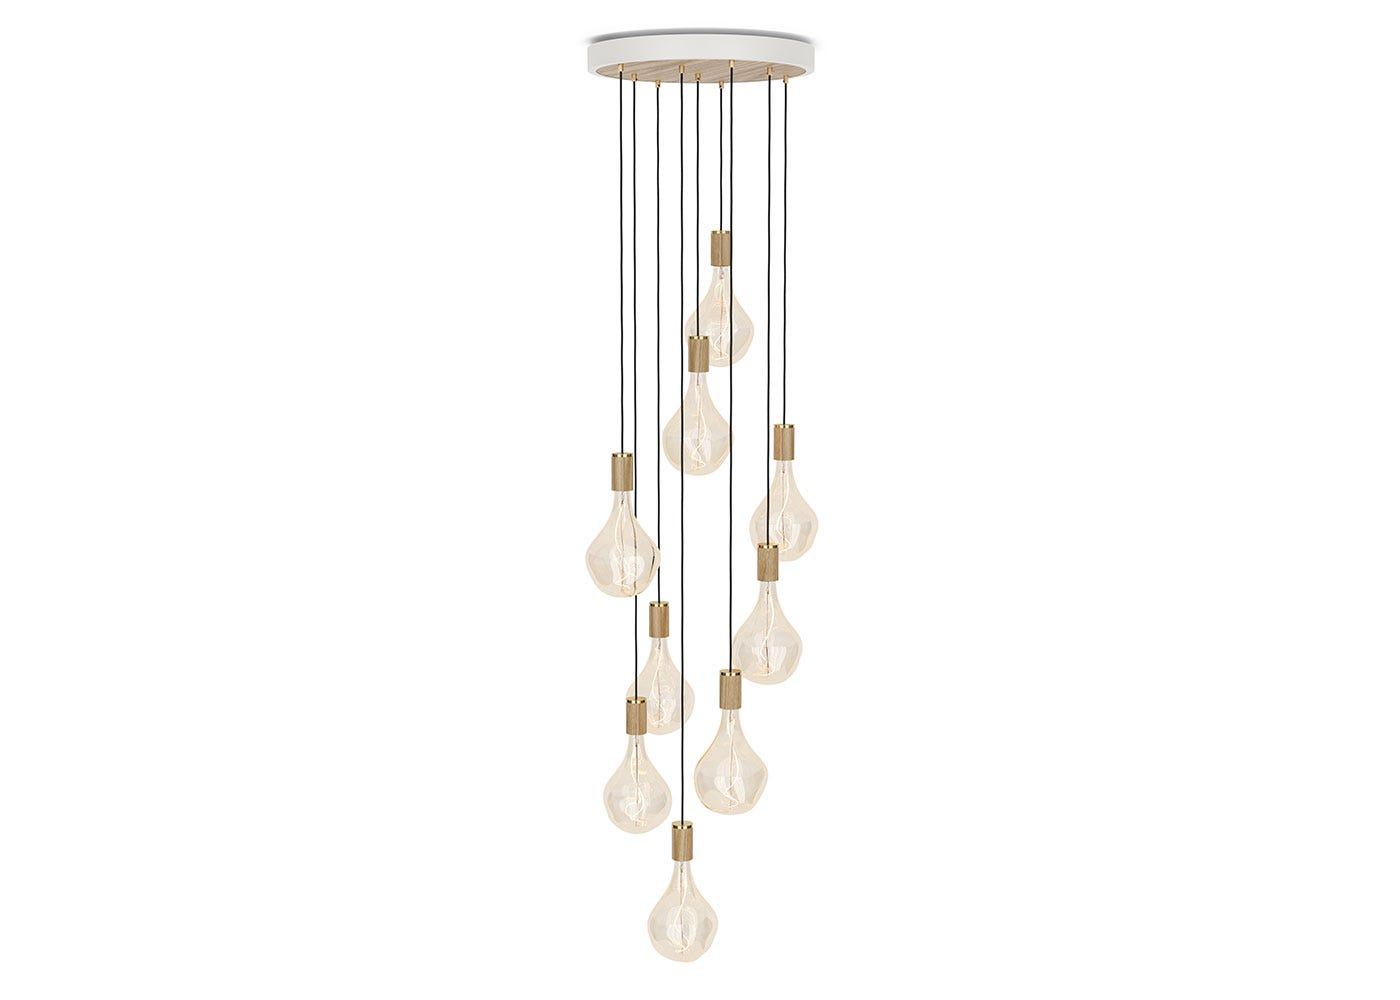 As Shown: Large White Canopy With 9 Pendants and 9 Voronoi II Bulbs in Oak